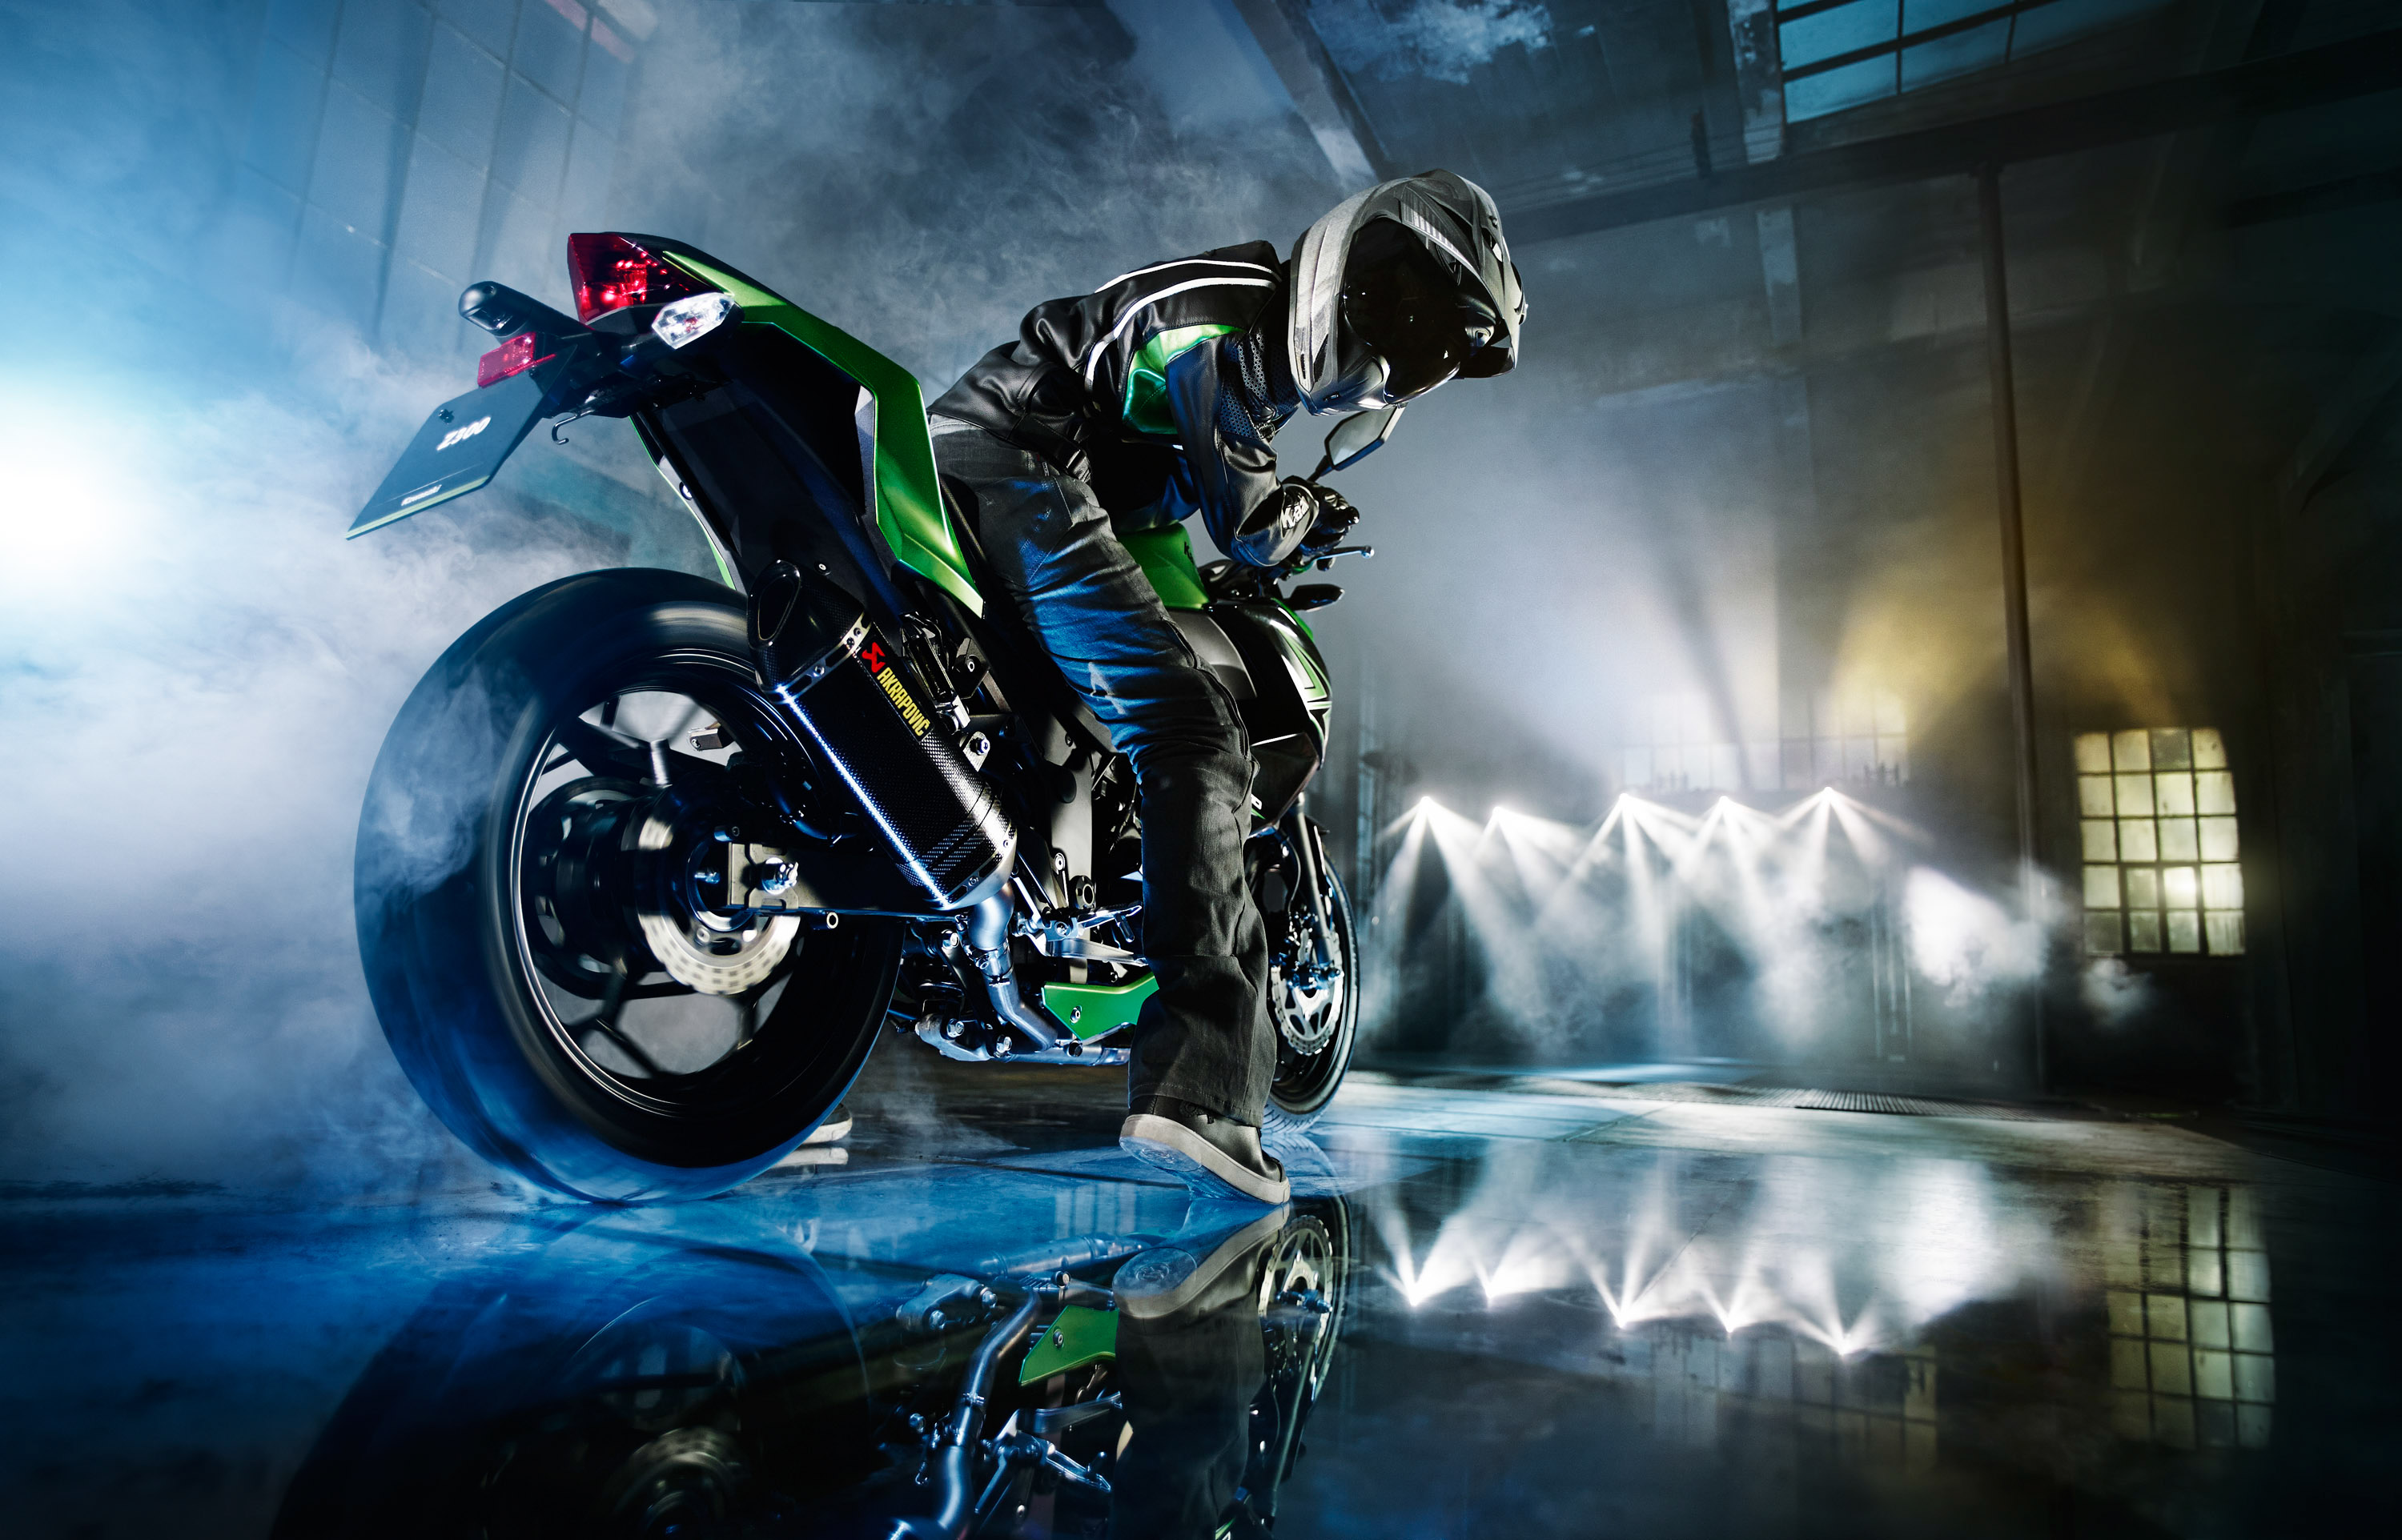 Kawasaki Z300, HD Bikes, 4k Wallpapers, Images